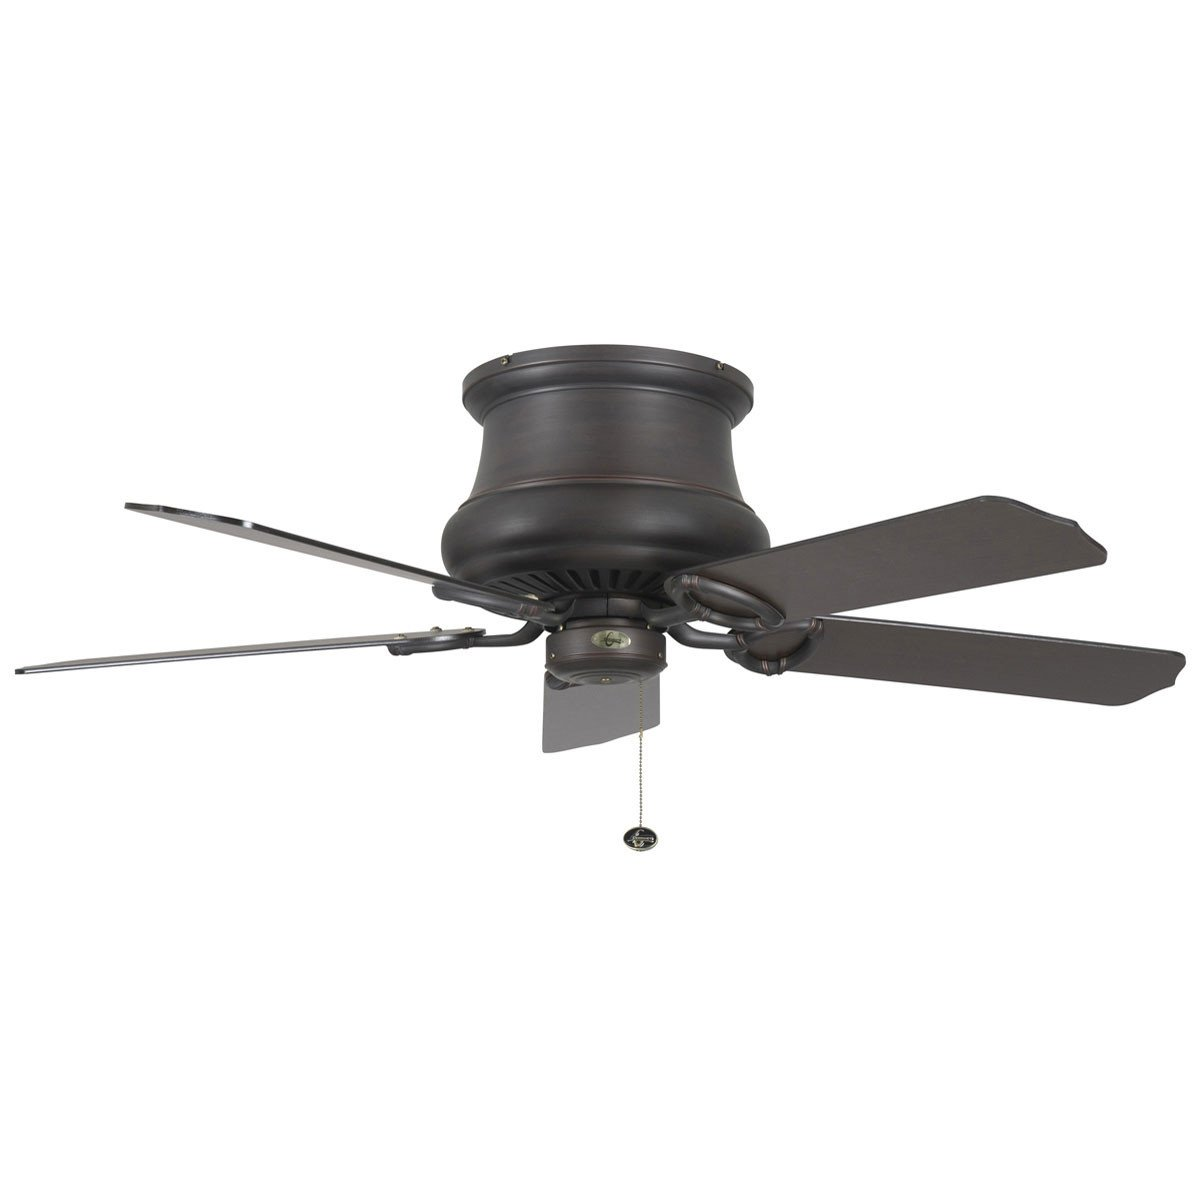 "Concord Fans 52"" Madison Hugger Low Profile Oil Rubbed Bronze Ceiling Fan"